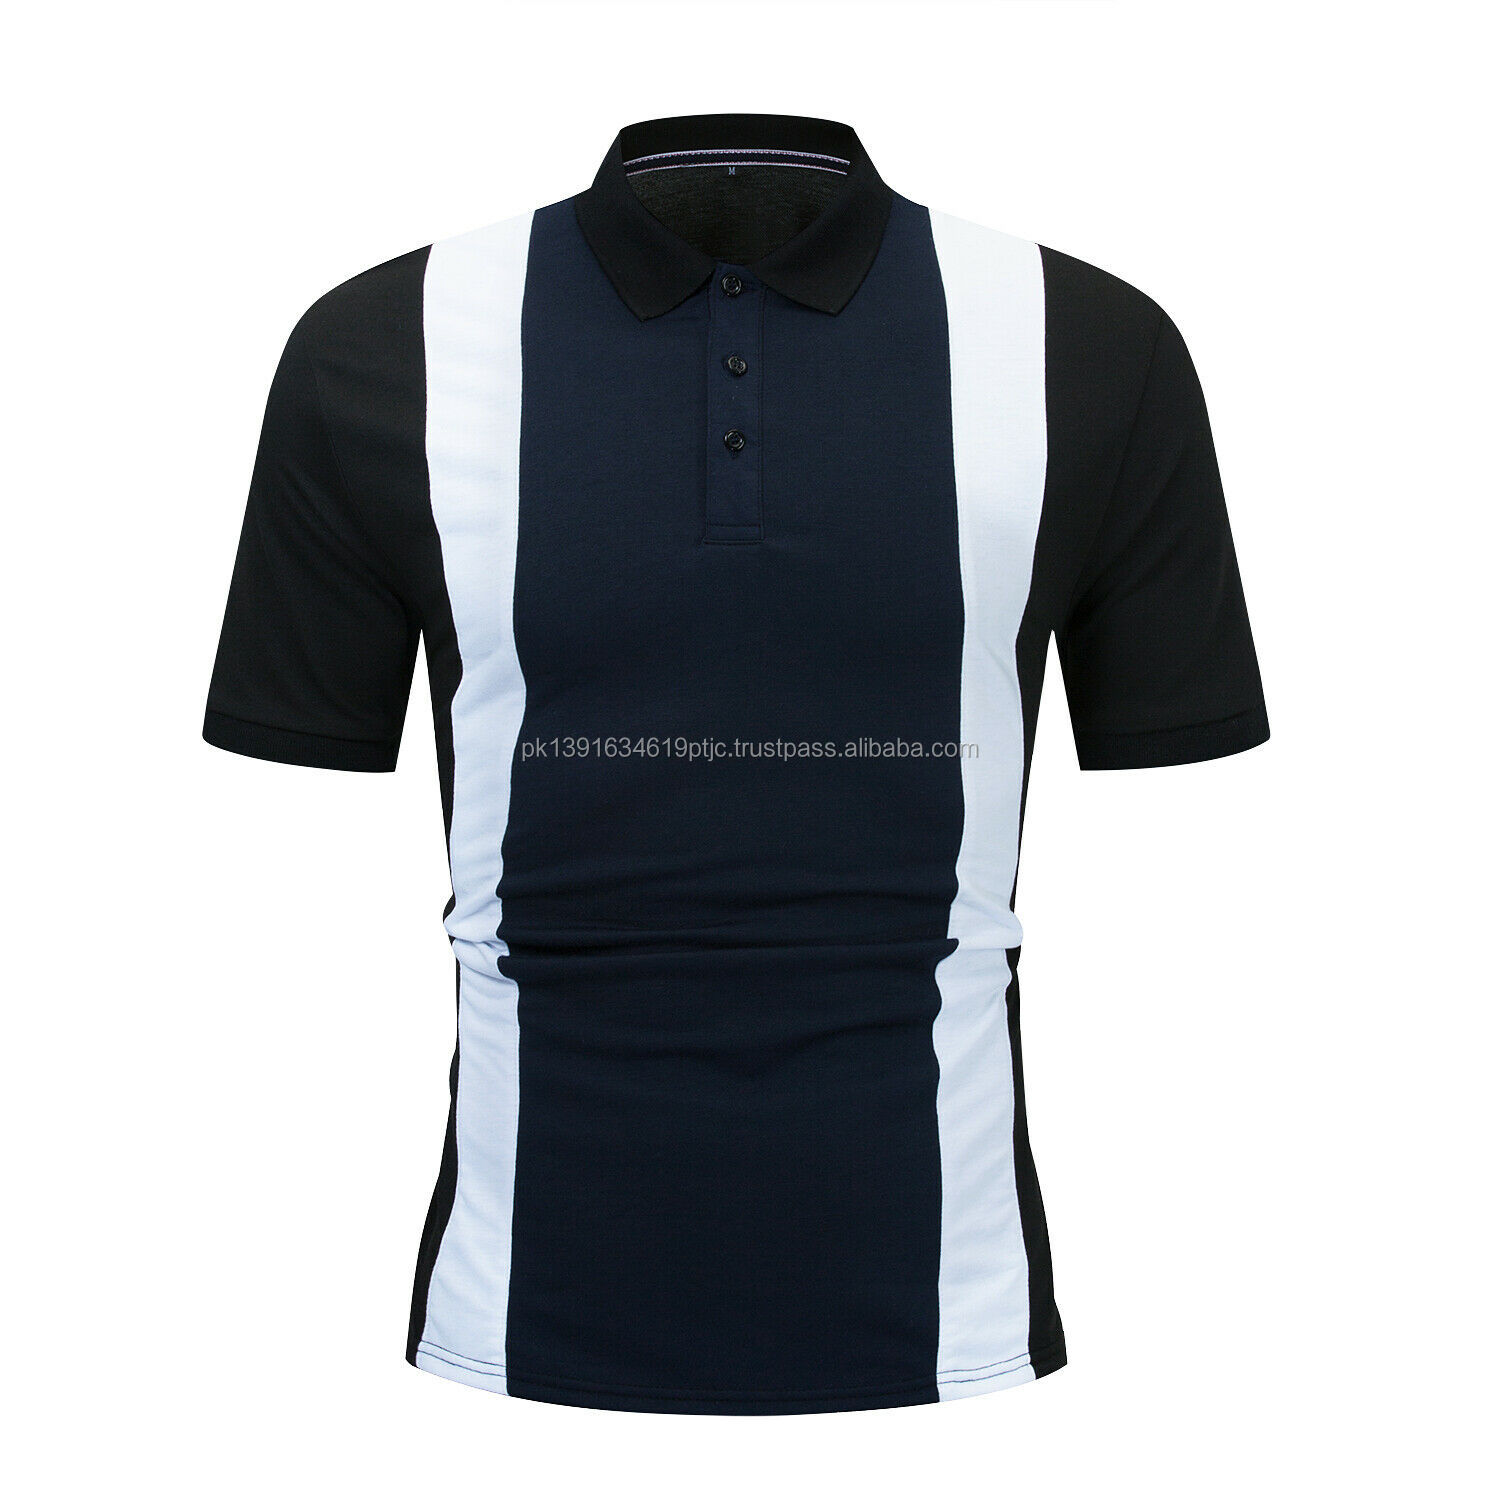 Hot Sell Full Sublimated Golf Polo Shirts Wholesale Made In Pakistan - Buy Sublimated Golf Polo Shirts,Custom Sublimated Golf Polo Shirts,Sublimated ...